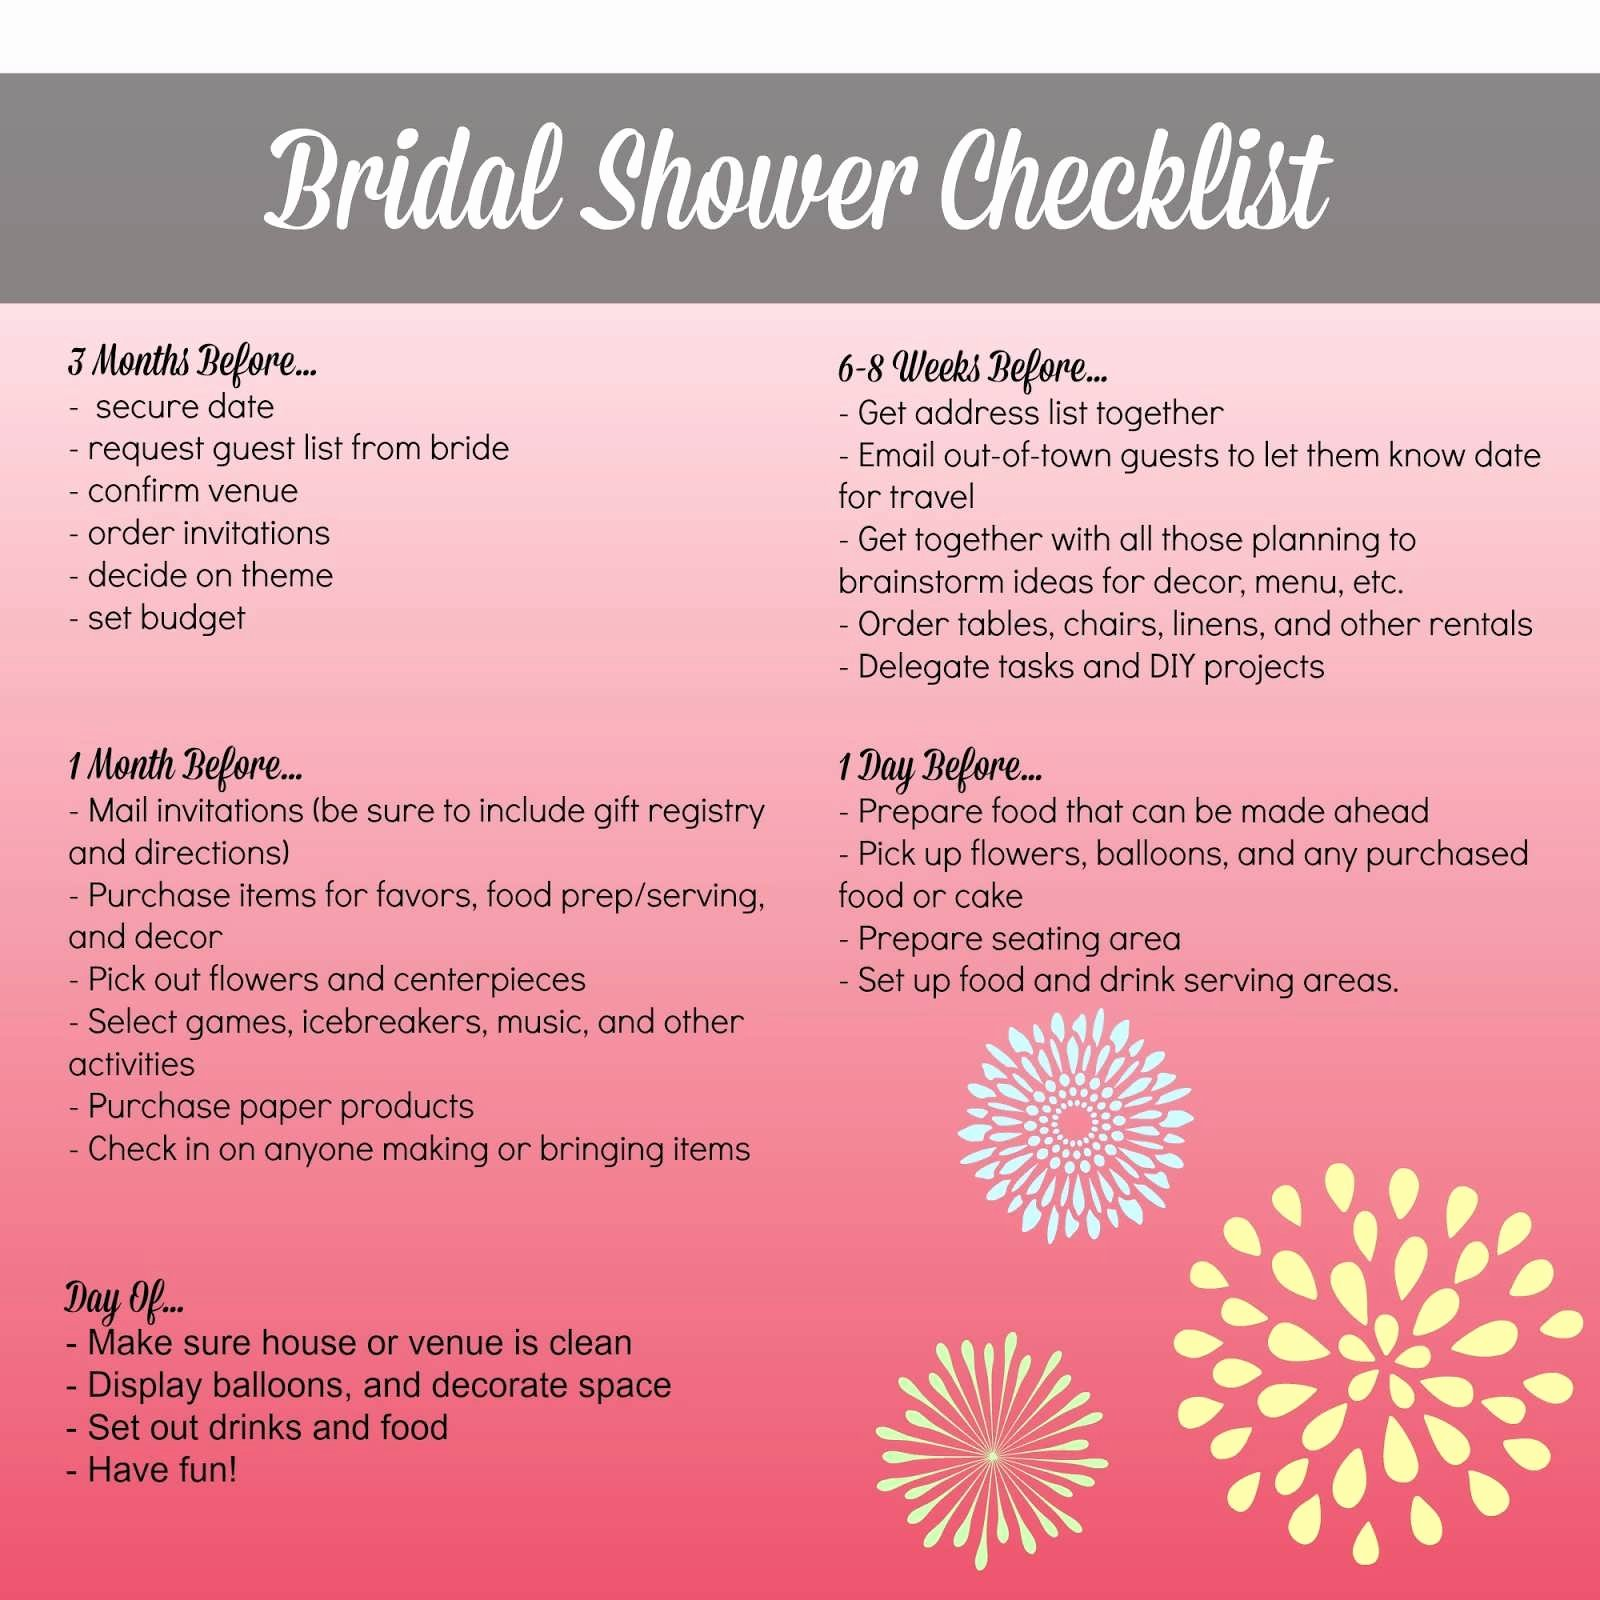 Bridal Shower Checklist Printable New Planning A Bridal Shower at Home